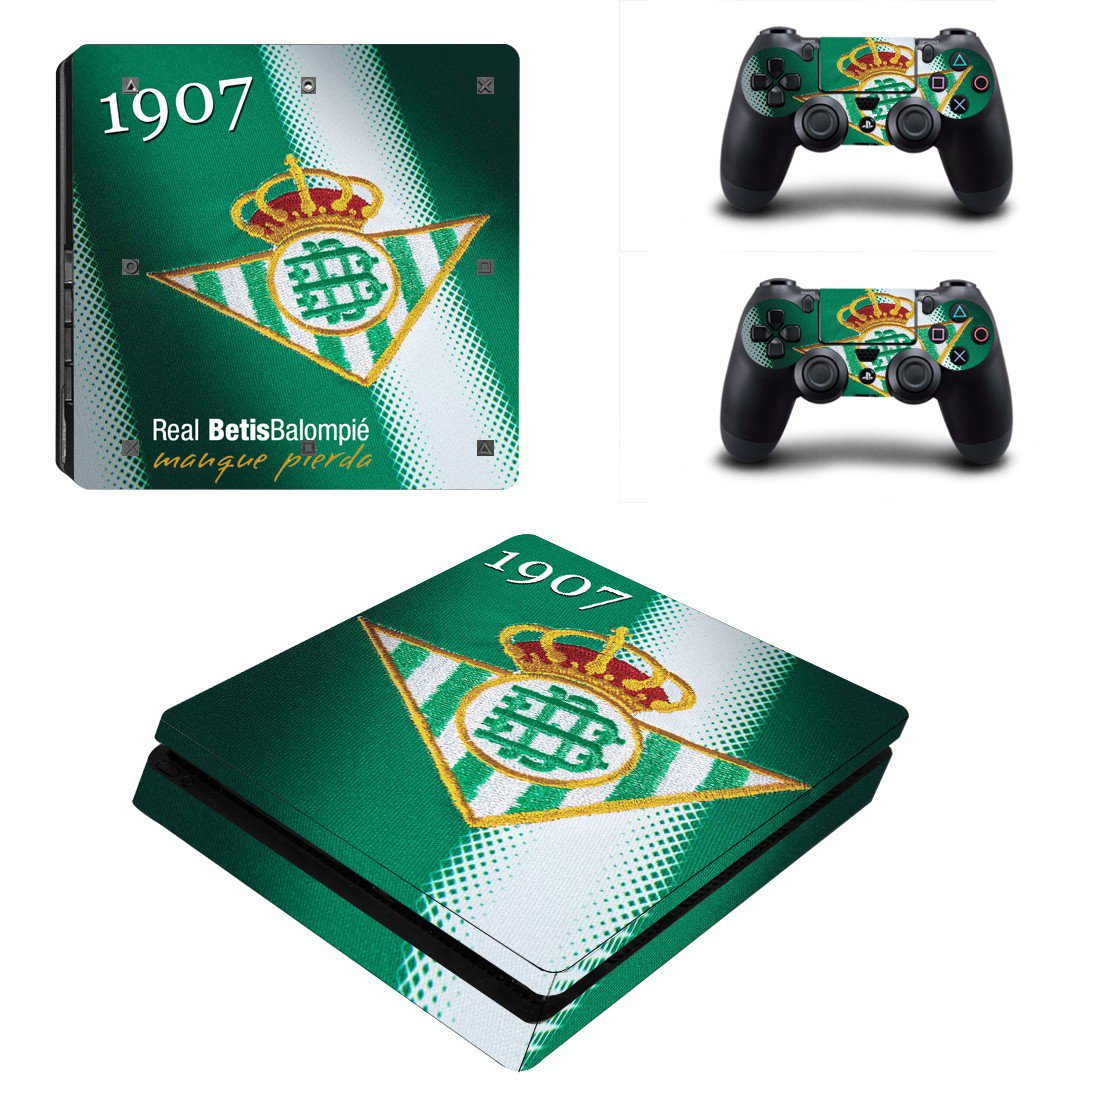 Real Betis Play Station 4 slim skin decal for console and 2 controllers